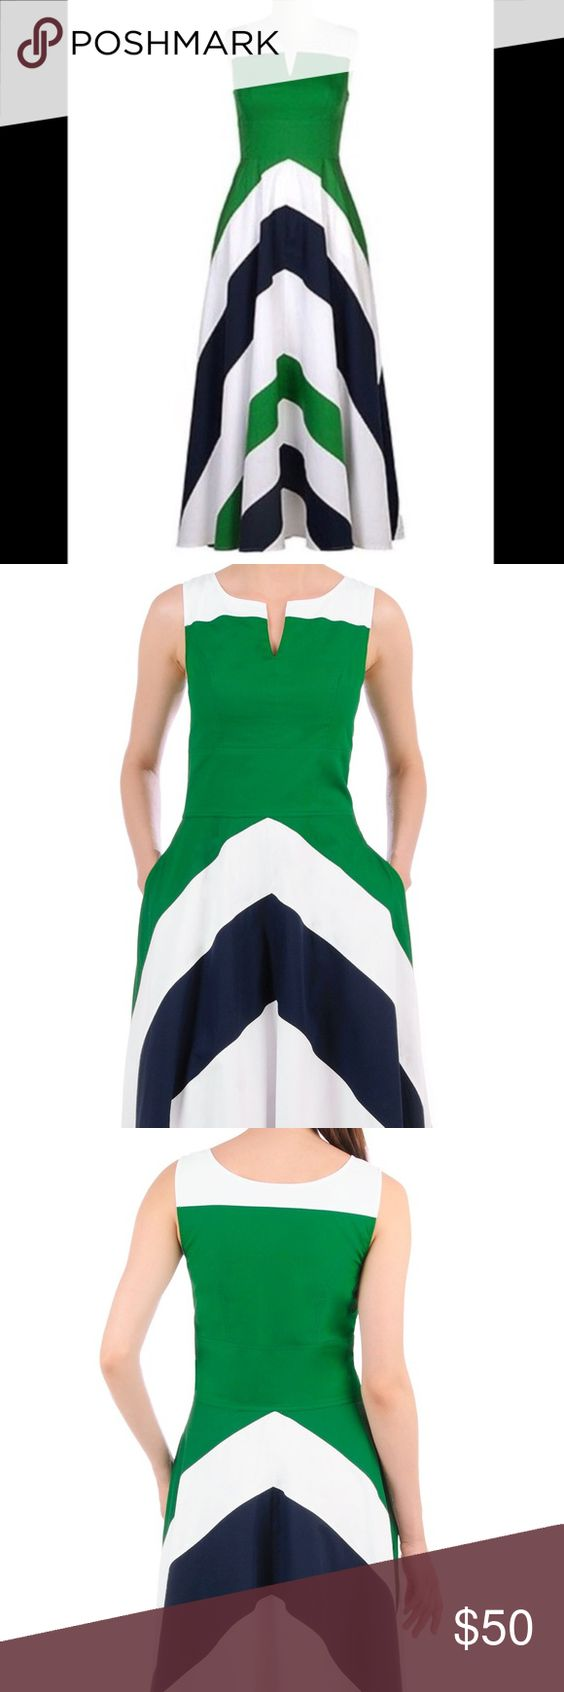 """Eshakti chevron color block maxi blue green dress Retails $102.95 NWOT Contrast tones vitalize our 50s fit-and-flare dress styled with a notched neckline and banded chevron stripes at the full flared skirt. Size 14 long/tall  Side zip with hook-and-eye closure. Split boat neckline. Sleeveless, inner bra strap keeps. Princess seamed bodice. Wide banded empire waist. Side seam pockets. Full length with 3"""" heels on. Lined in cotton voile. Cotton, woven poplin, pre-shrunk, smooth finish, light…"""